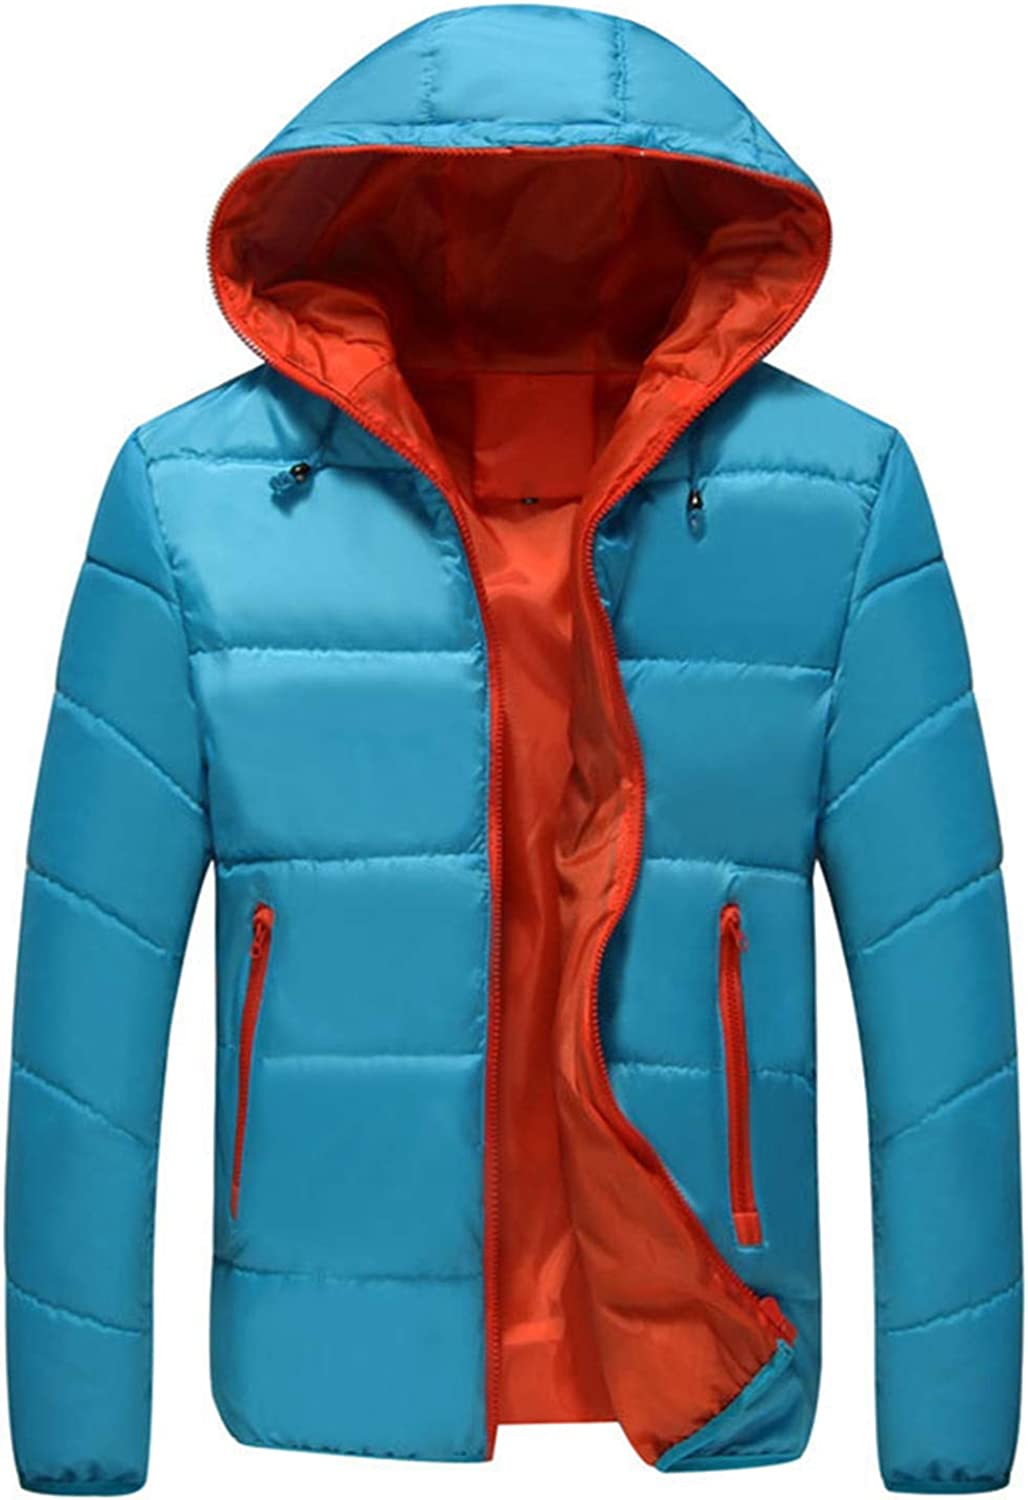 Men's Winter Jacket,Thicken Quilted Hooded Padded Down Alternative Puffer Coat Outerwear Overcoat (Sky Blue,Large)